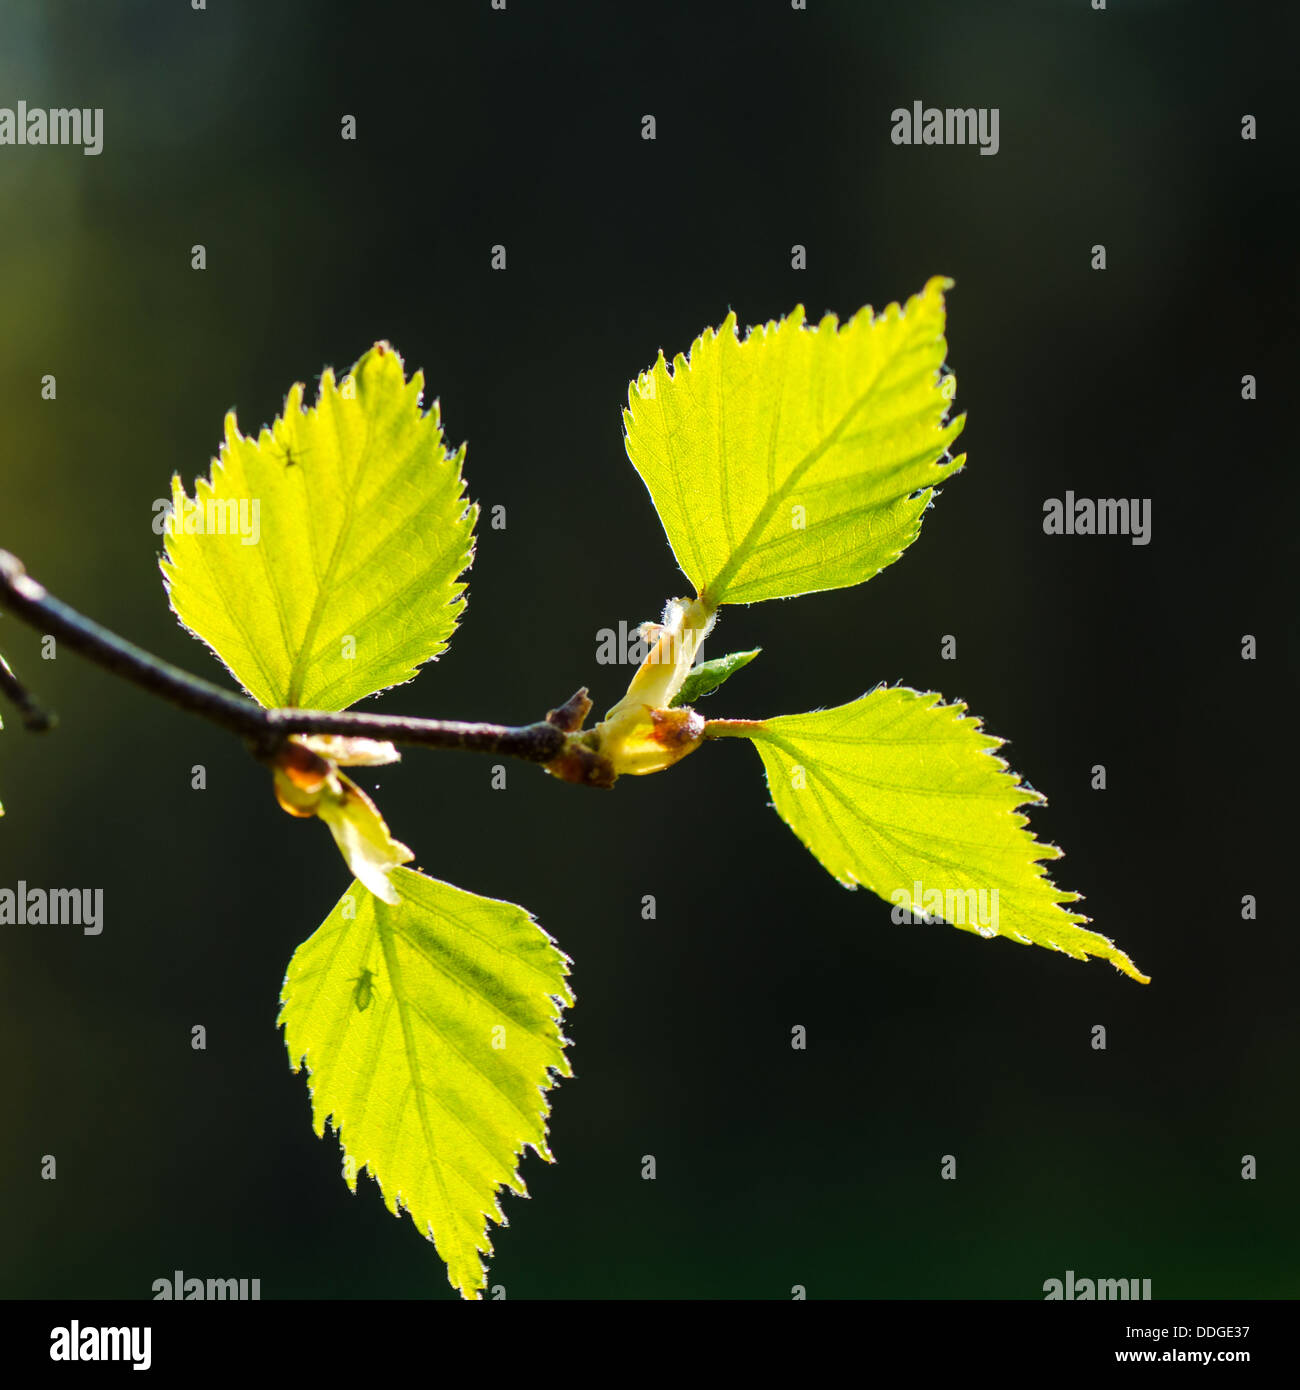 New birch leaves at dark in springtime. - Stock Image